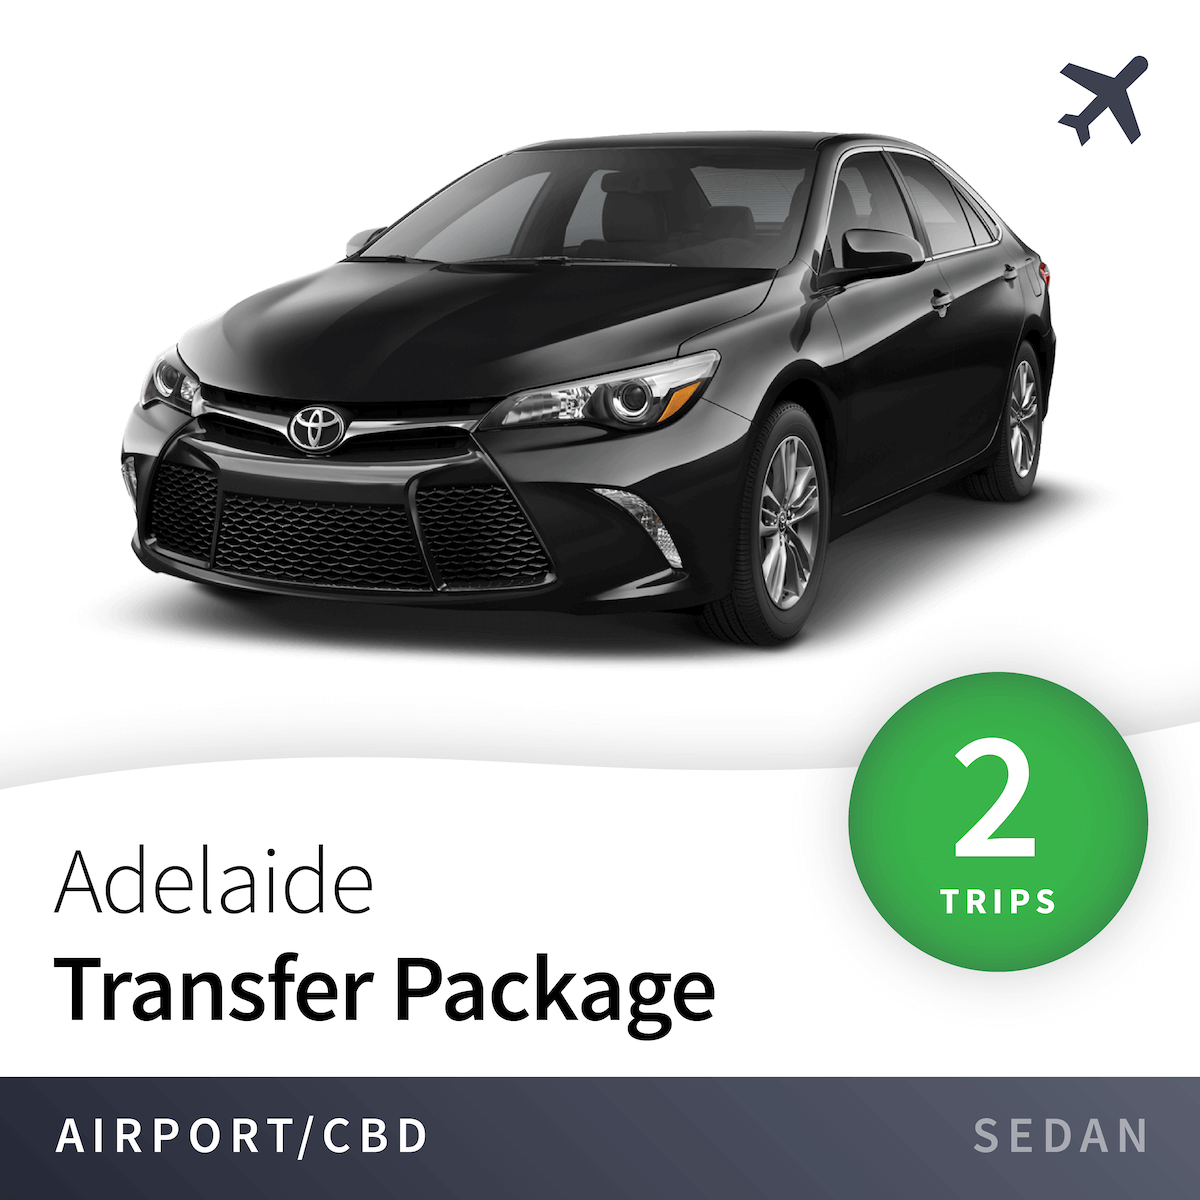 Adelaide Airport Transfer Package - Sedan (2 Trips) 3